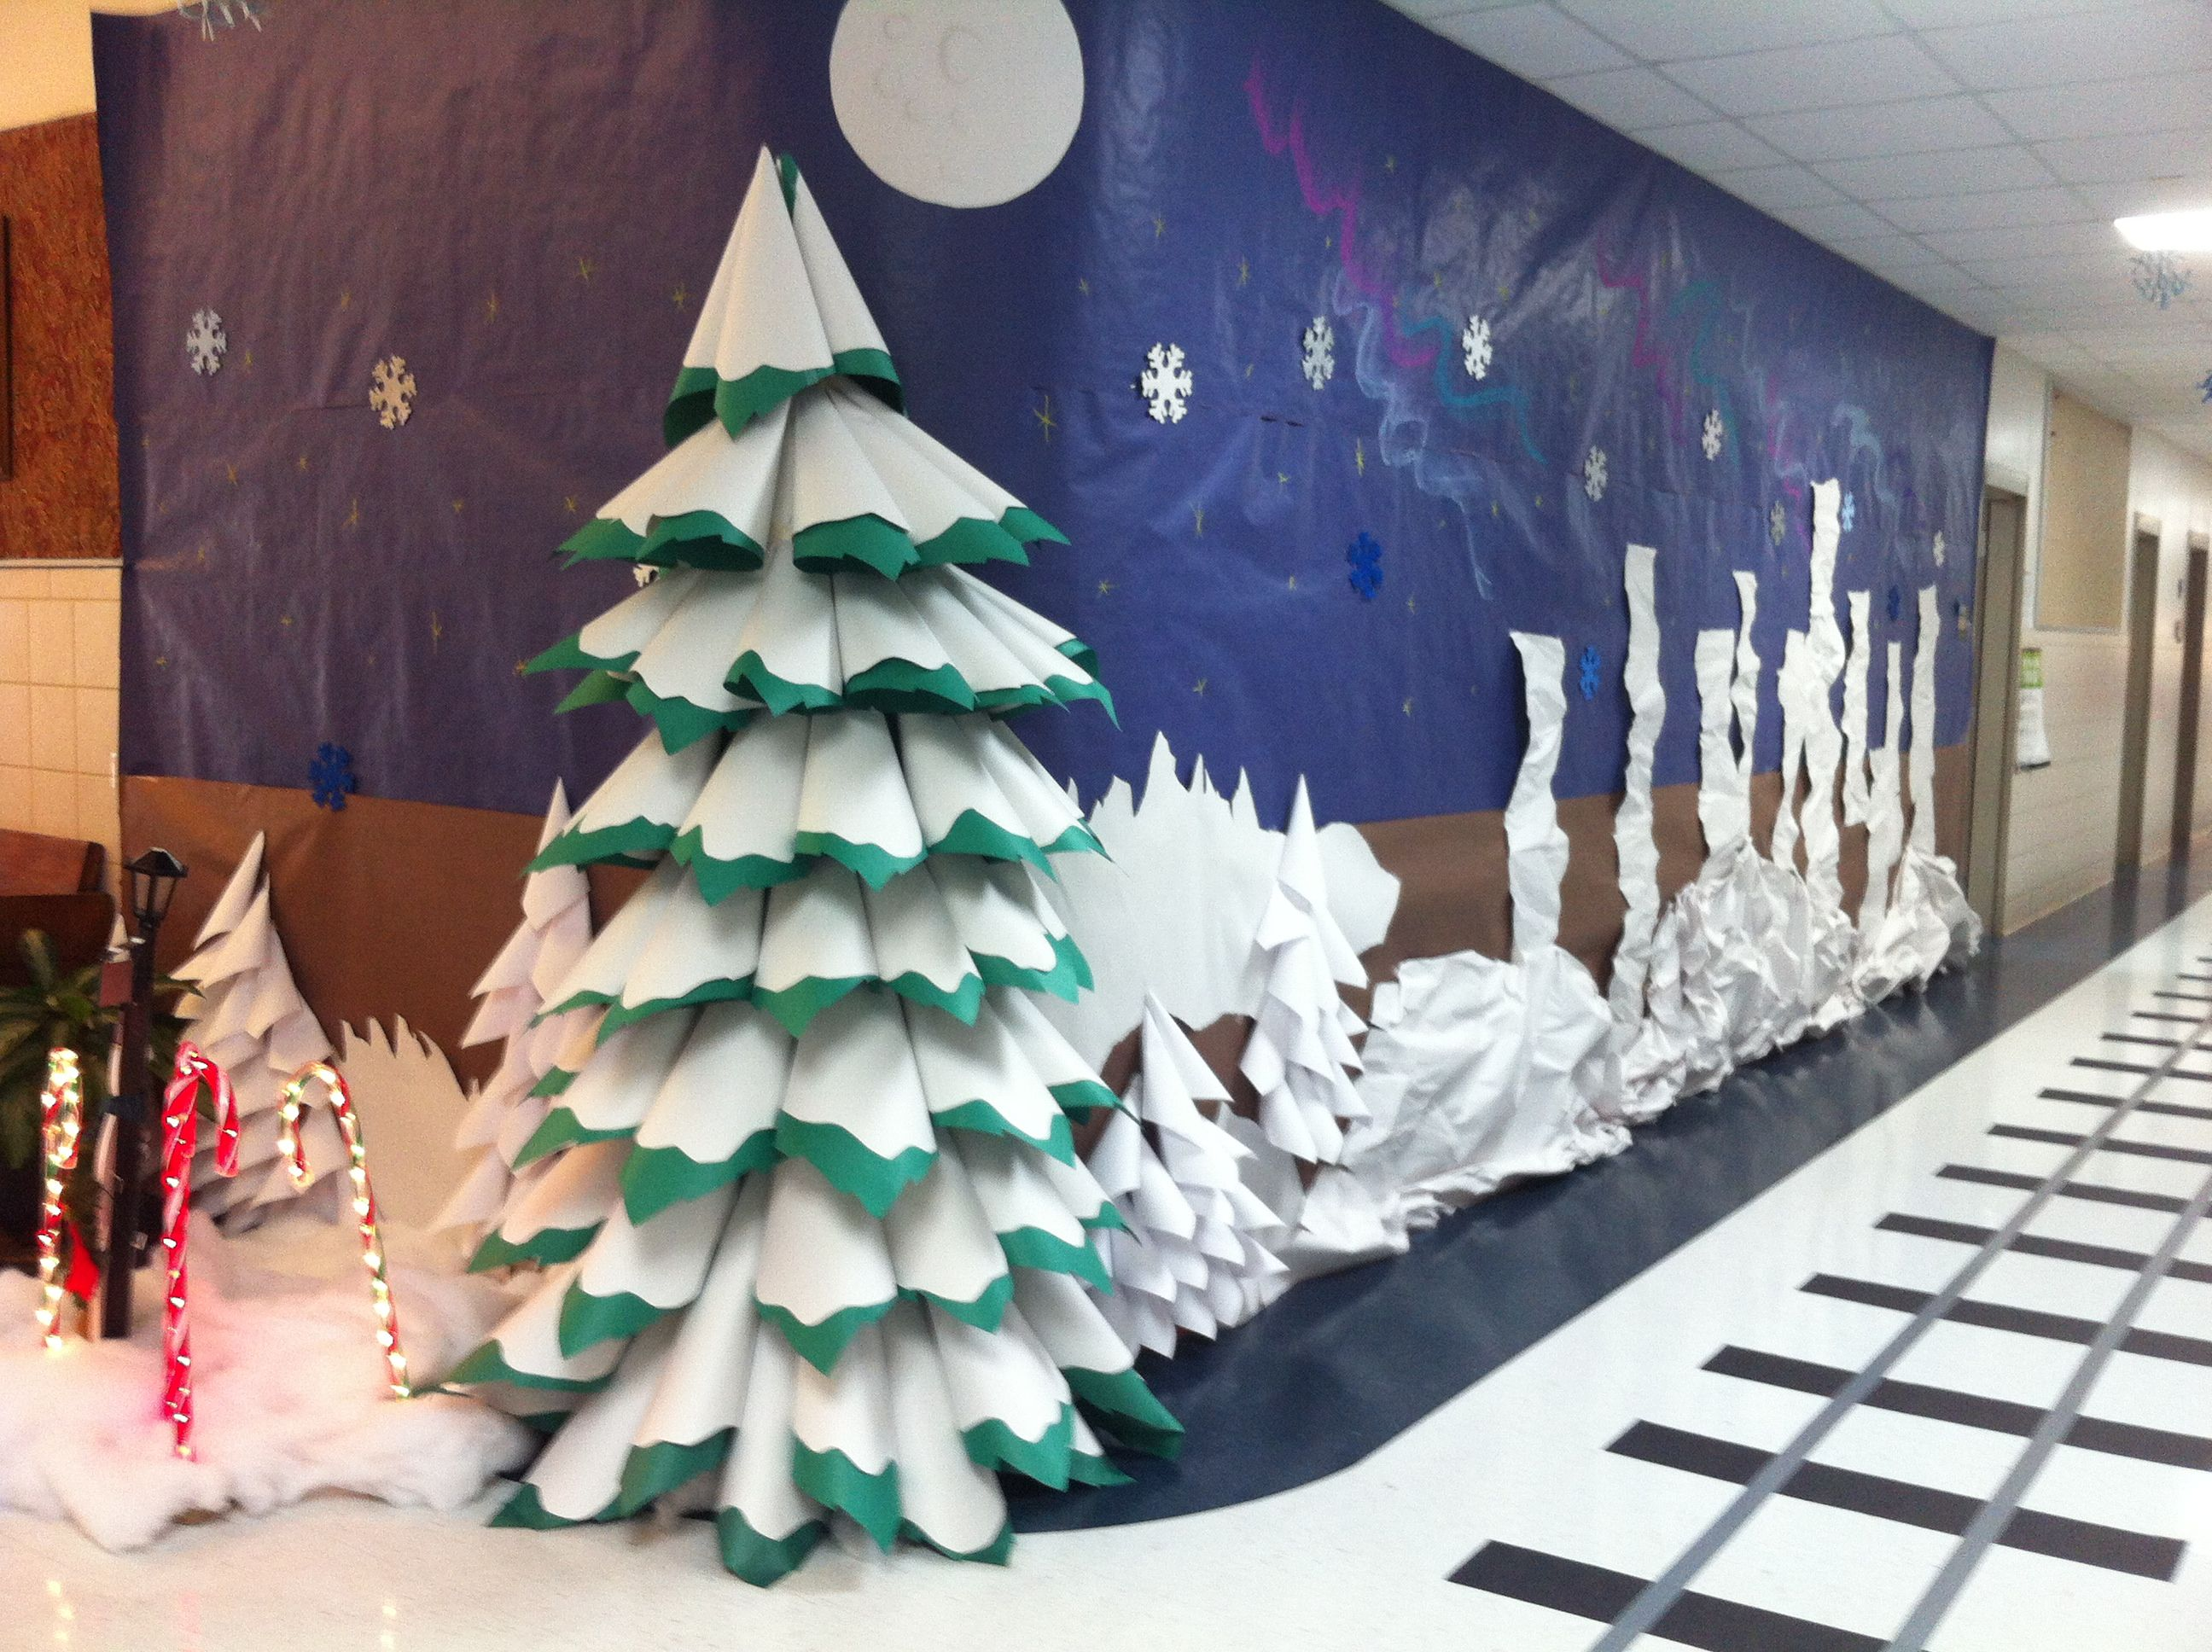 paper come tree for polar express visit to halls of my school - Christmas Hall Decorations